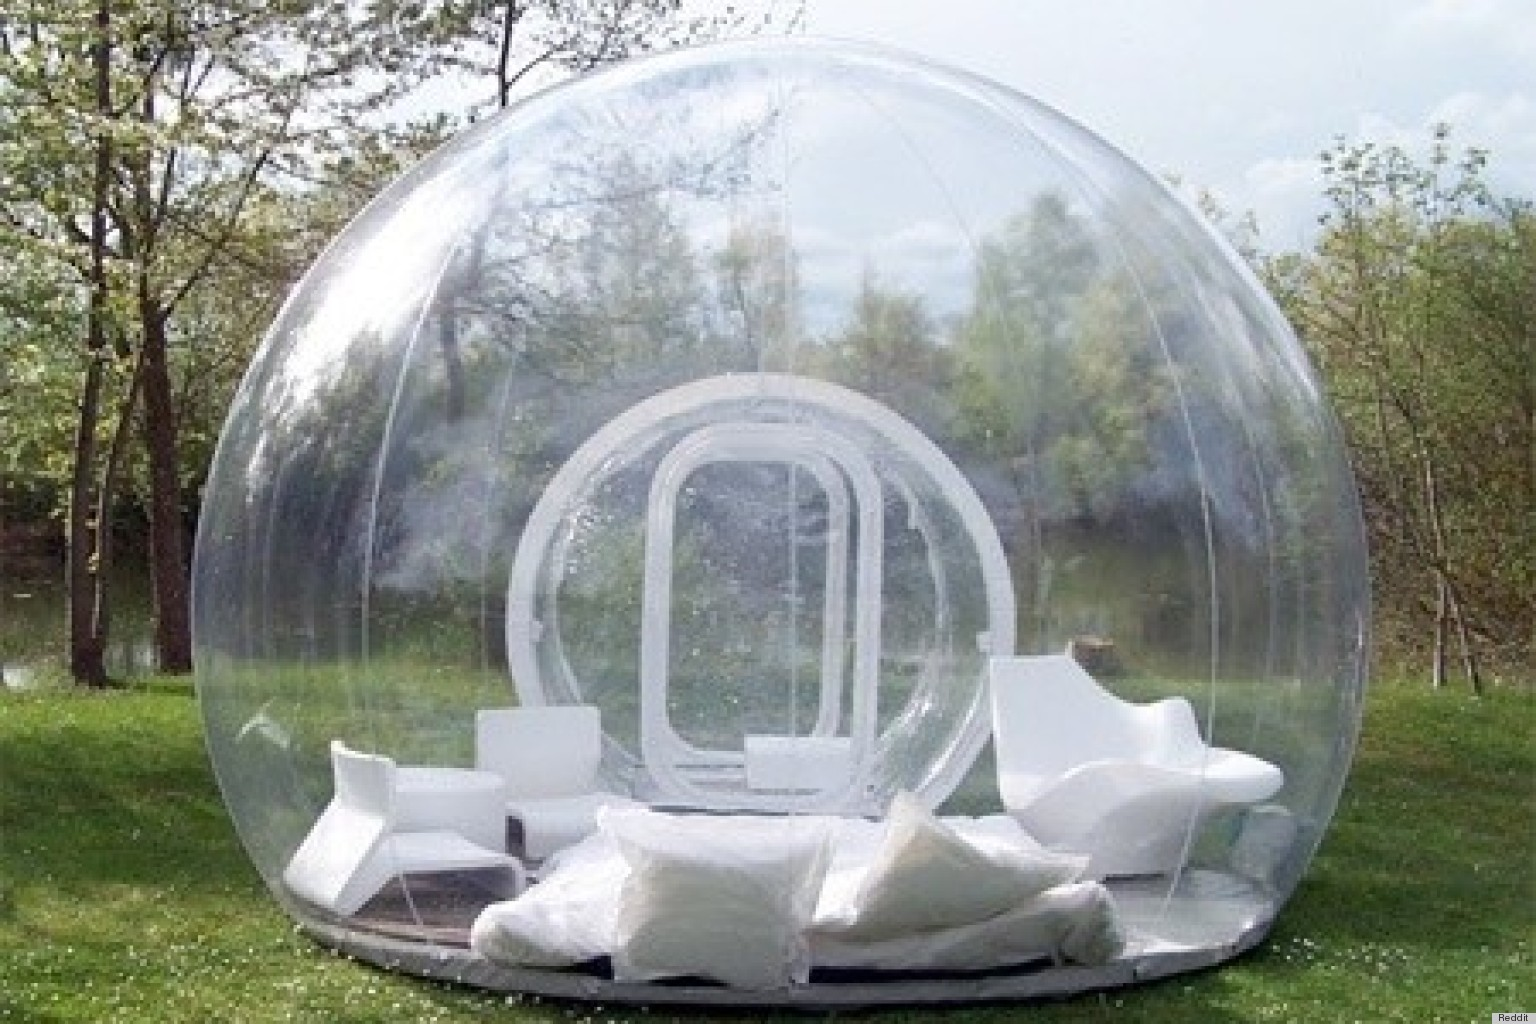 This 'Bubble' Tent Would Be Perfect For Camping Under The ... Quarantine Bubble